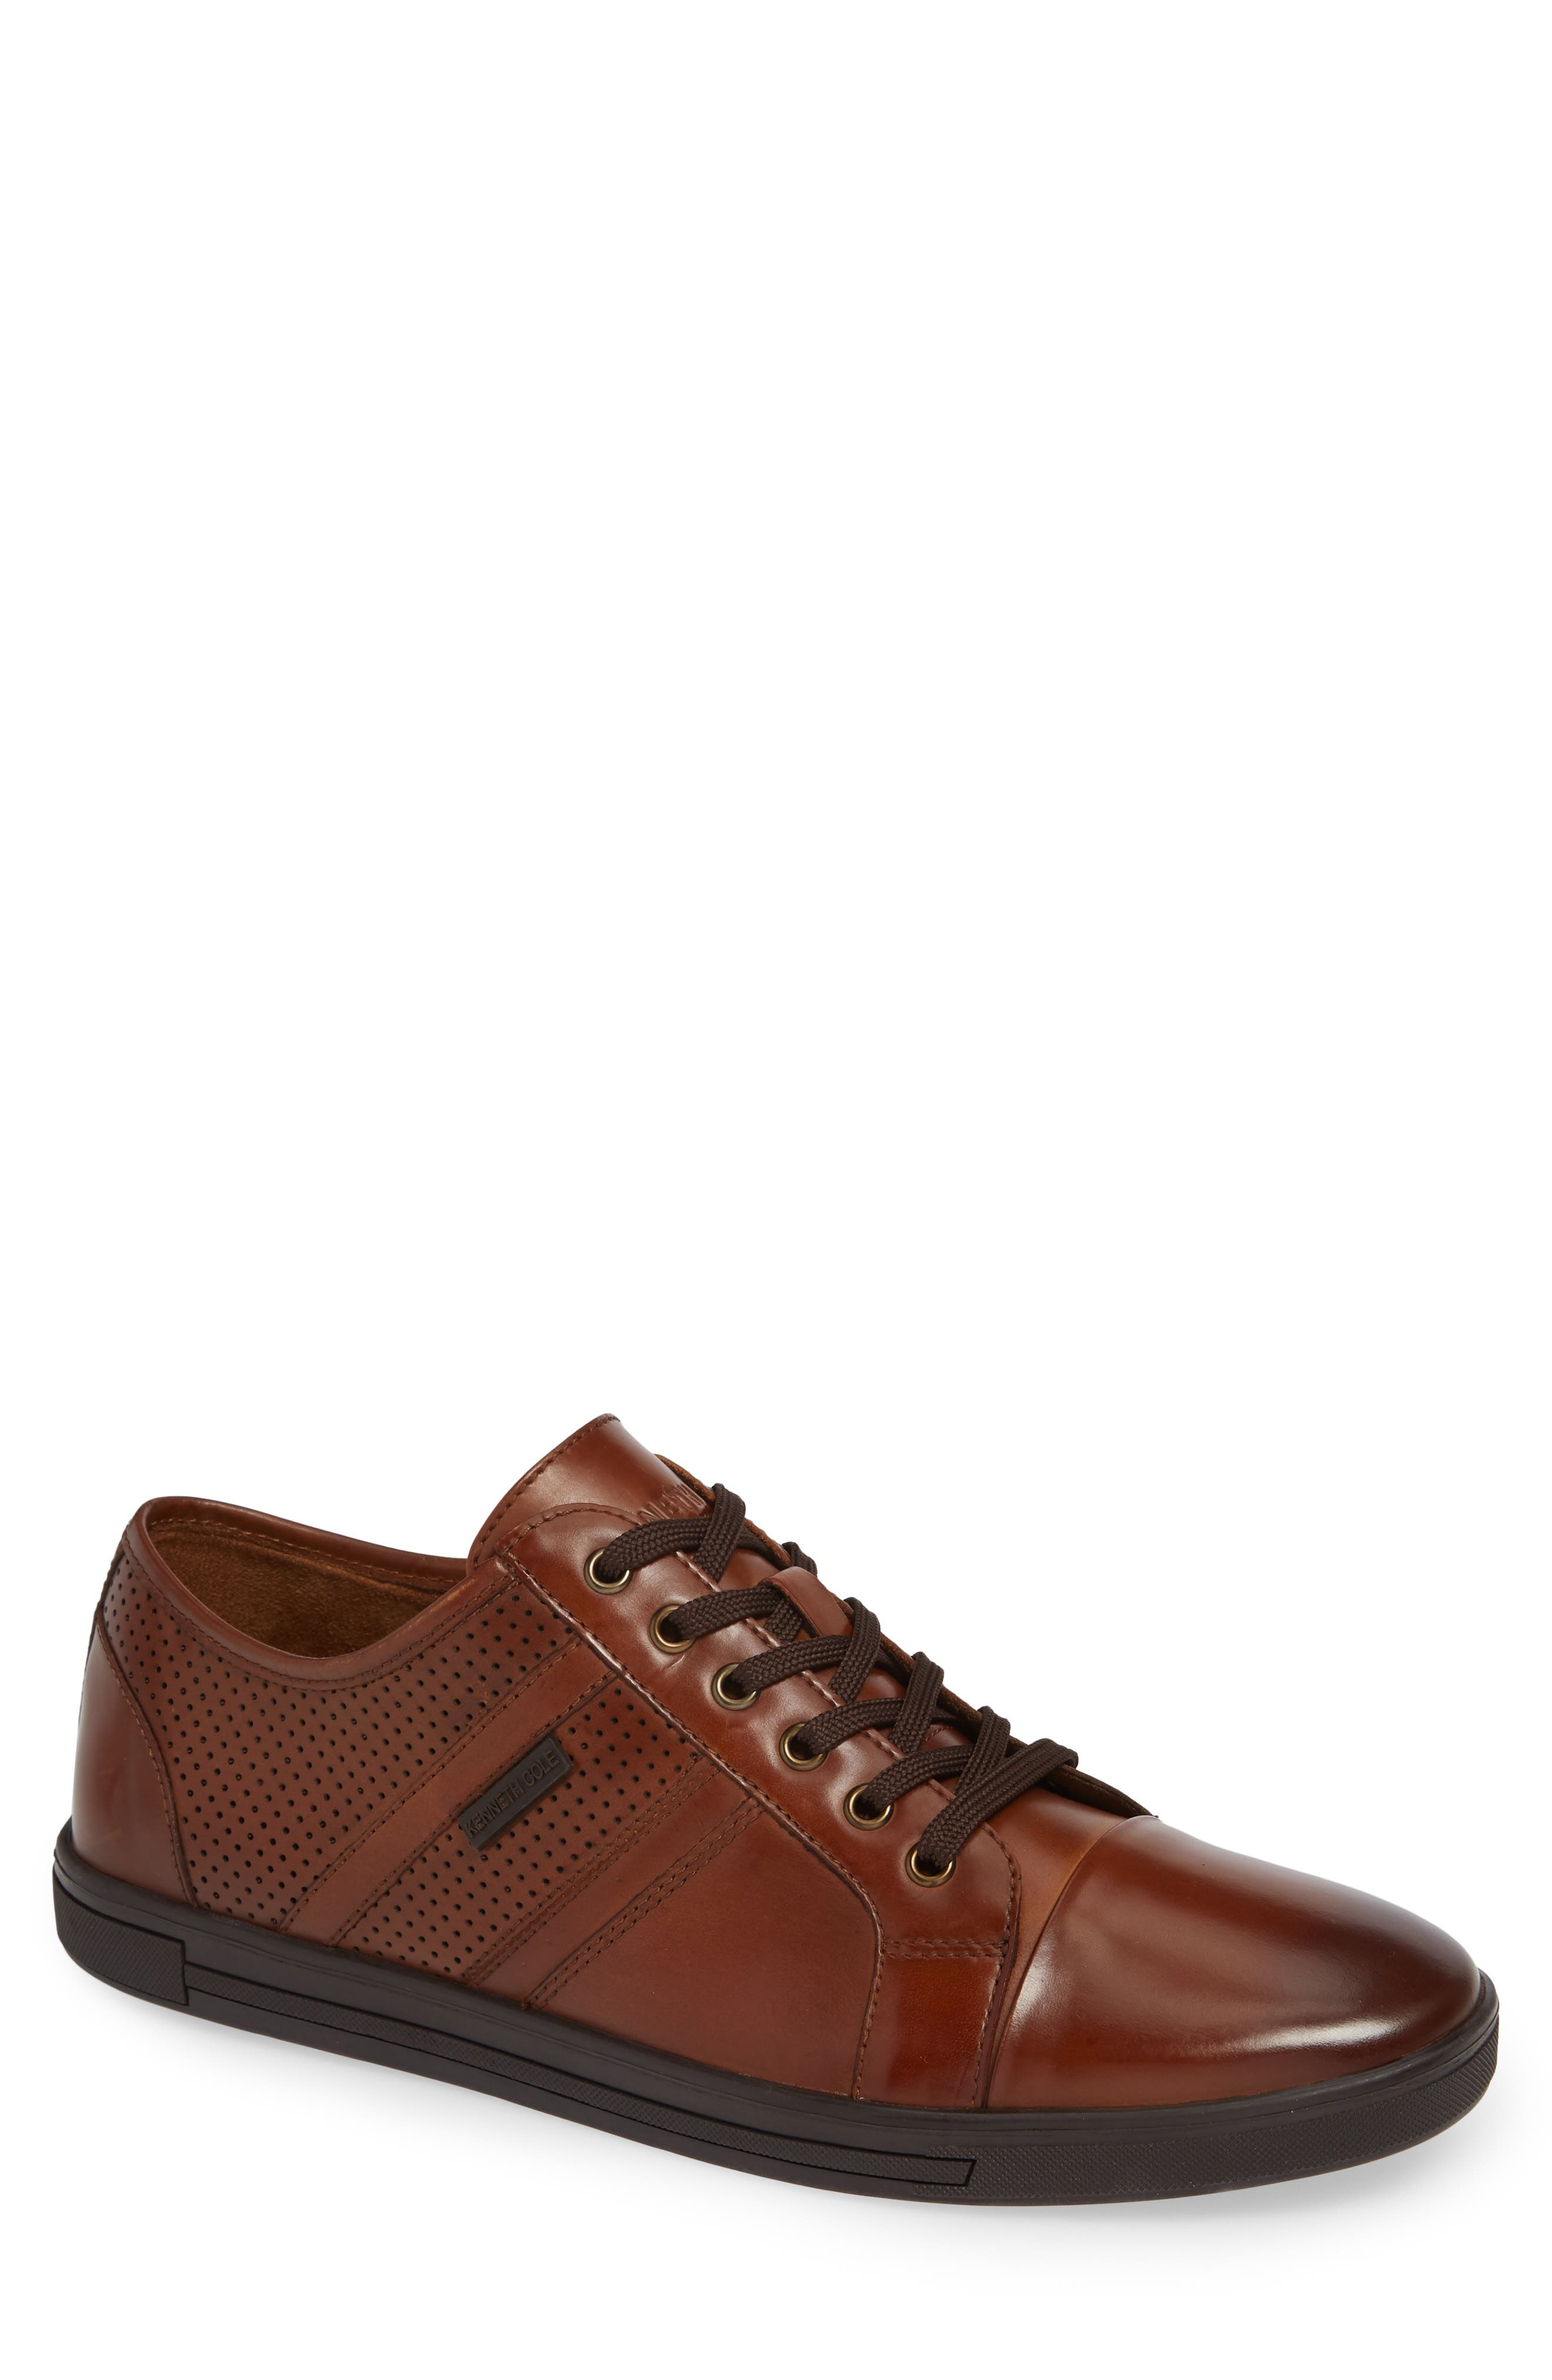 Initial Step Sneaker,                             Main thumbnail 1, color,                             COGNAC LEATHER